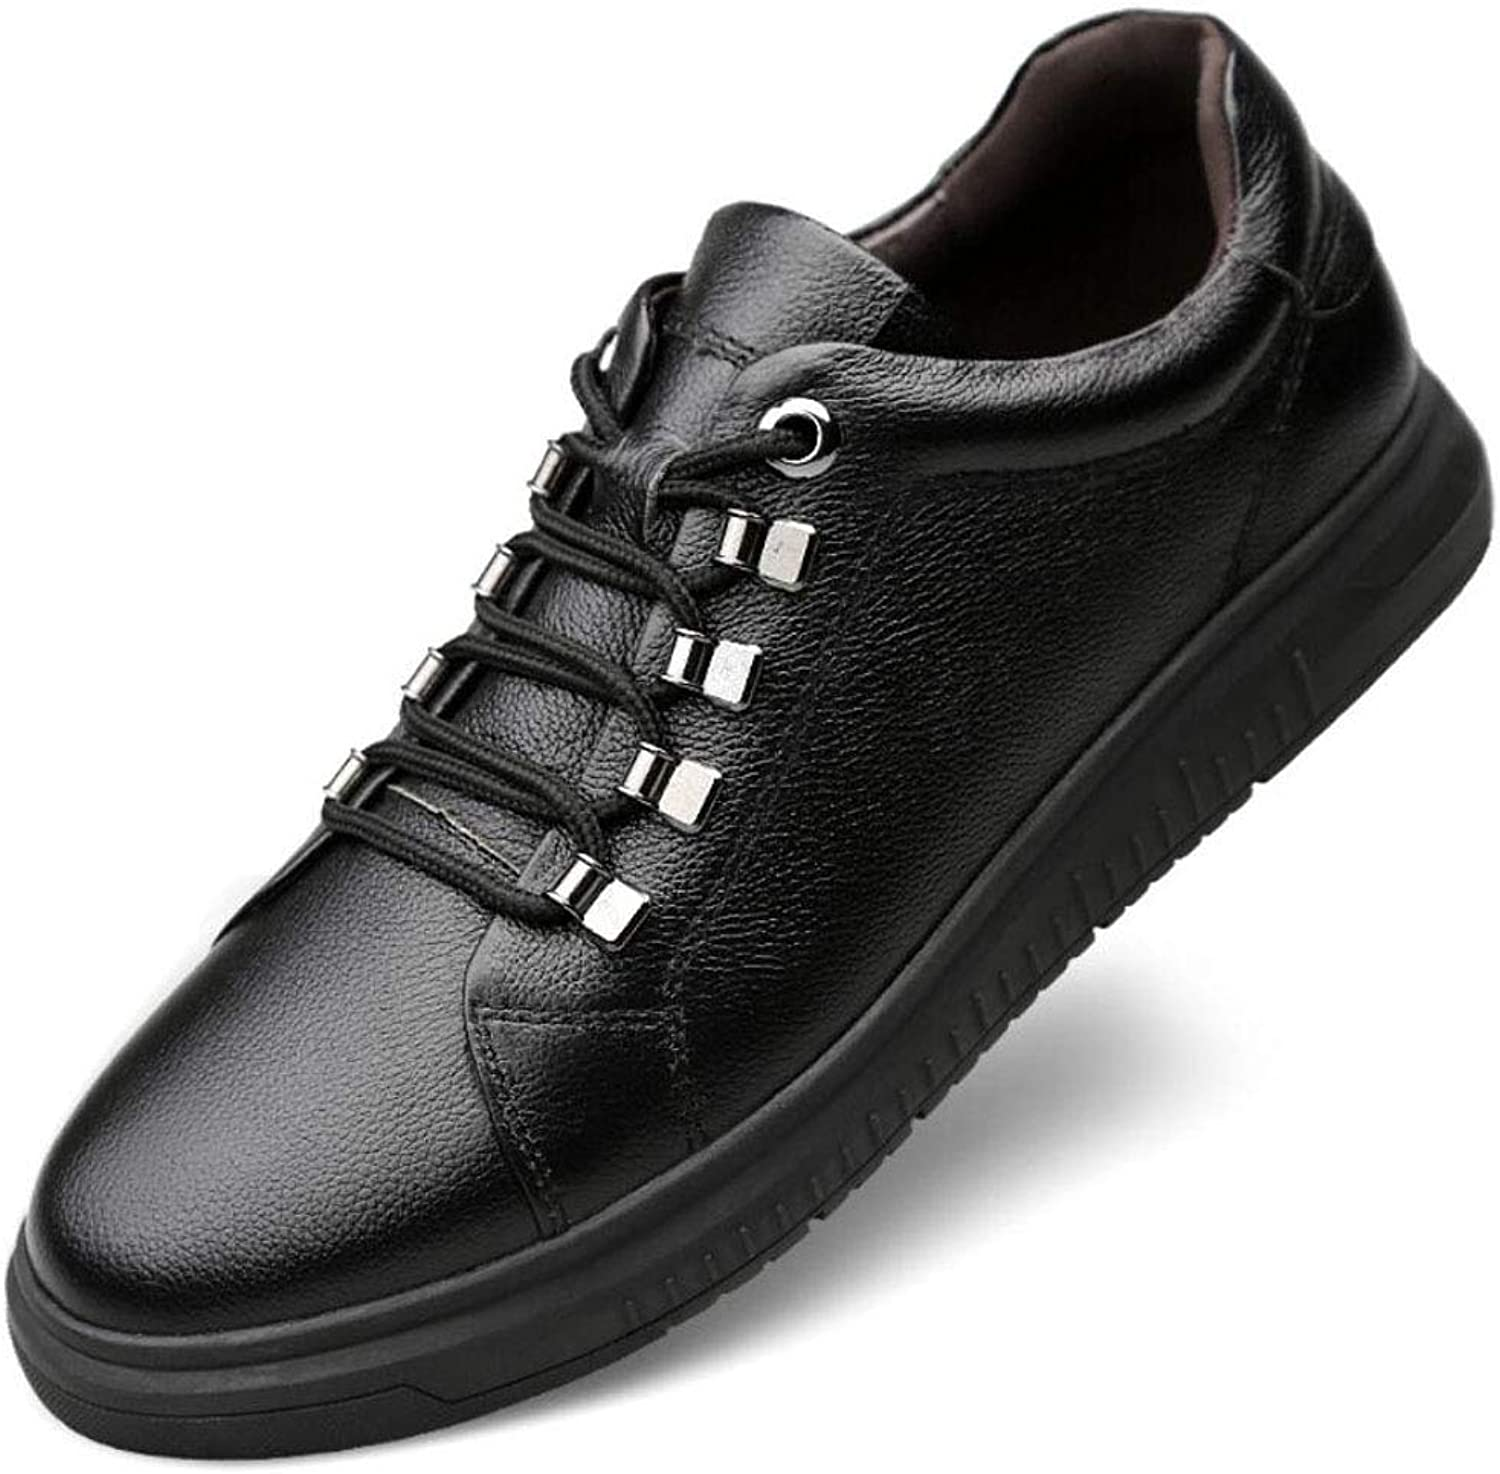 Men's Casual shoes, First Layer Of Kraft shoes, Small Size Youth Large Size Men's shoes